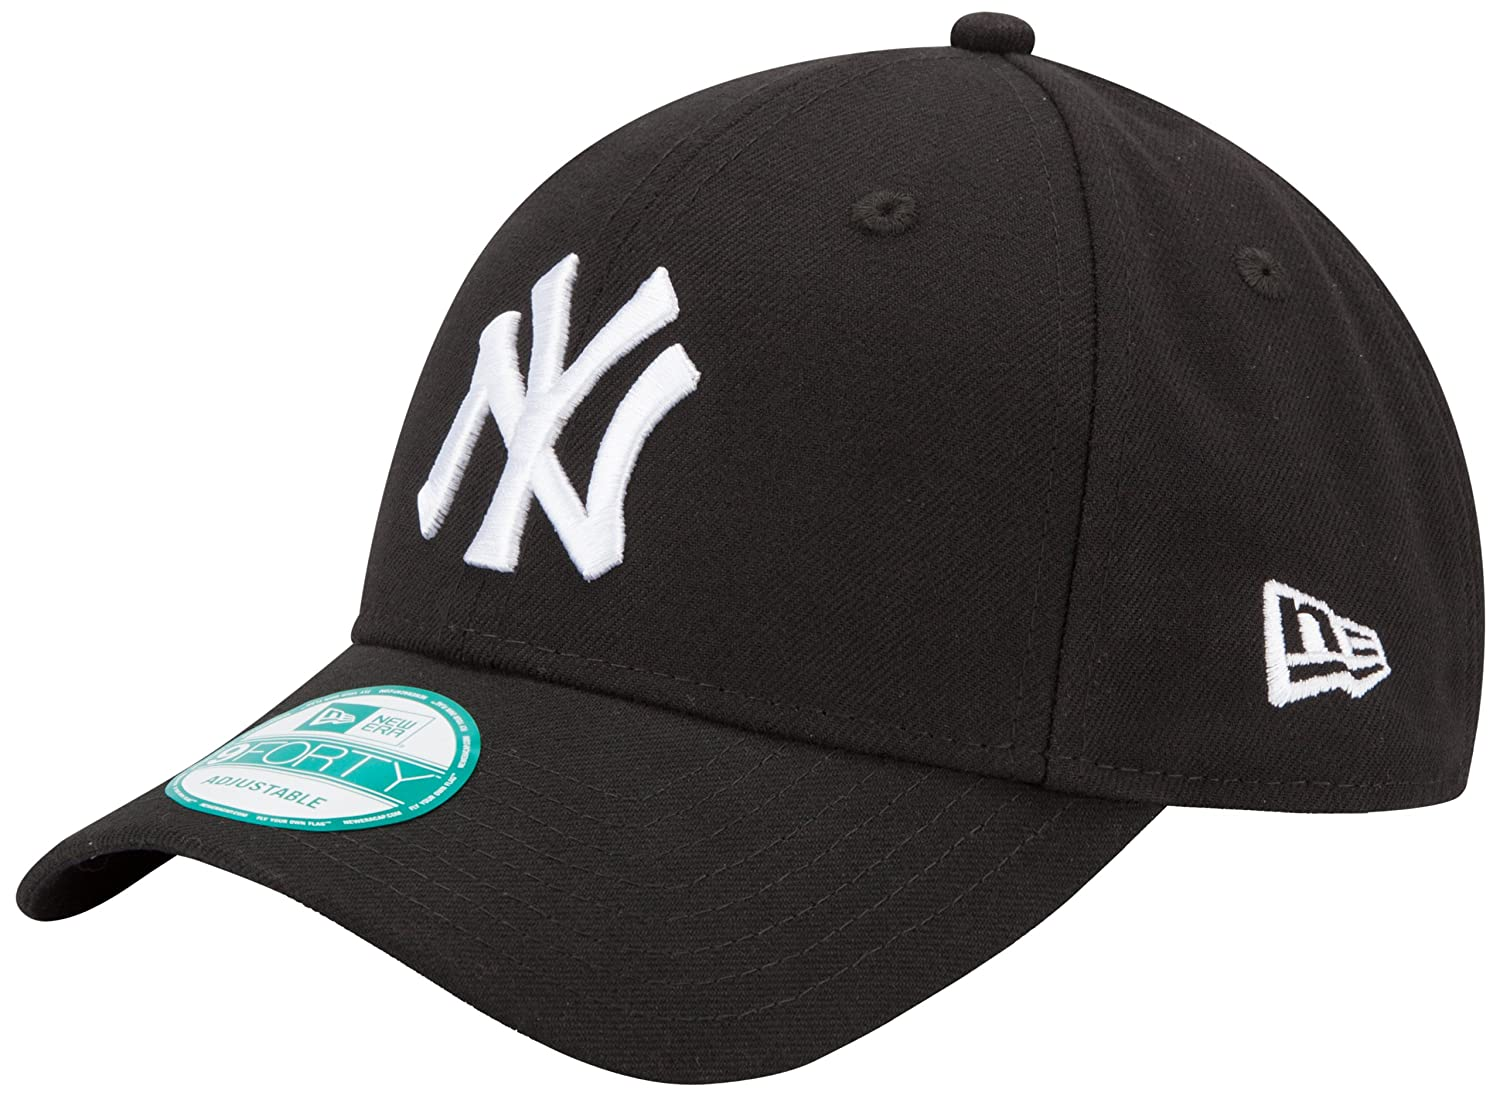 97d5a0ec993 Buy MLB The League New York Yankees 9Forty Cap Online at Low Prices in  India - Amazon.in